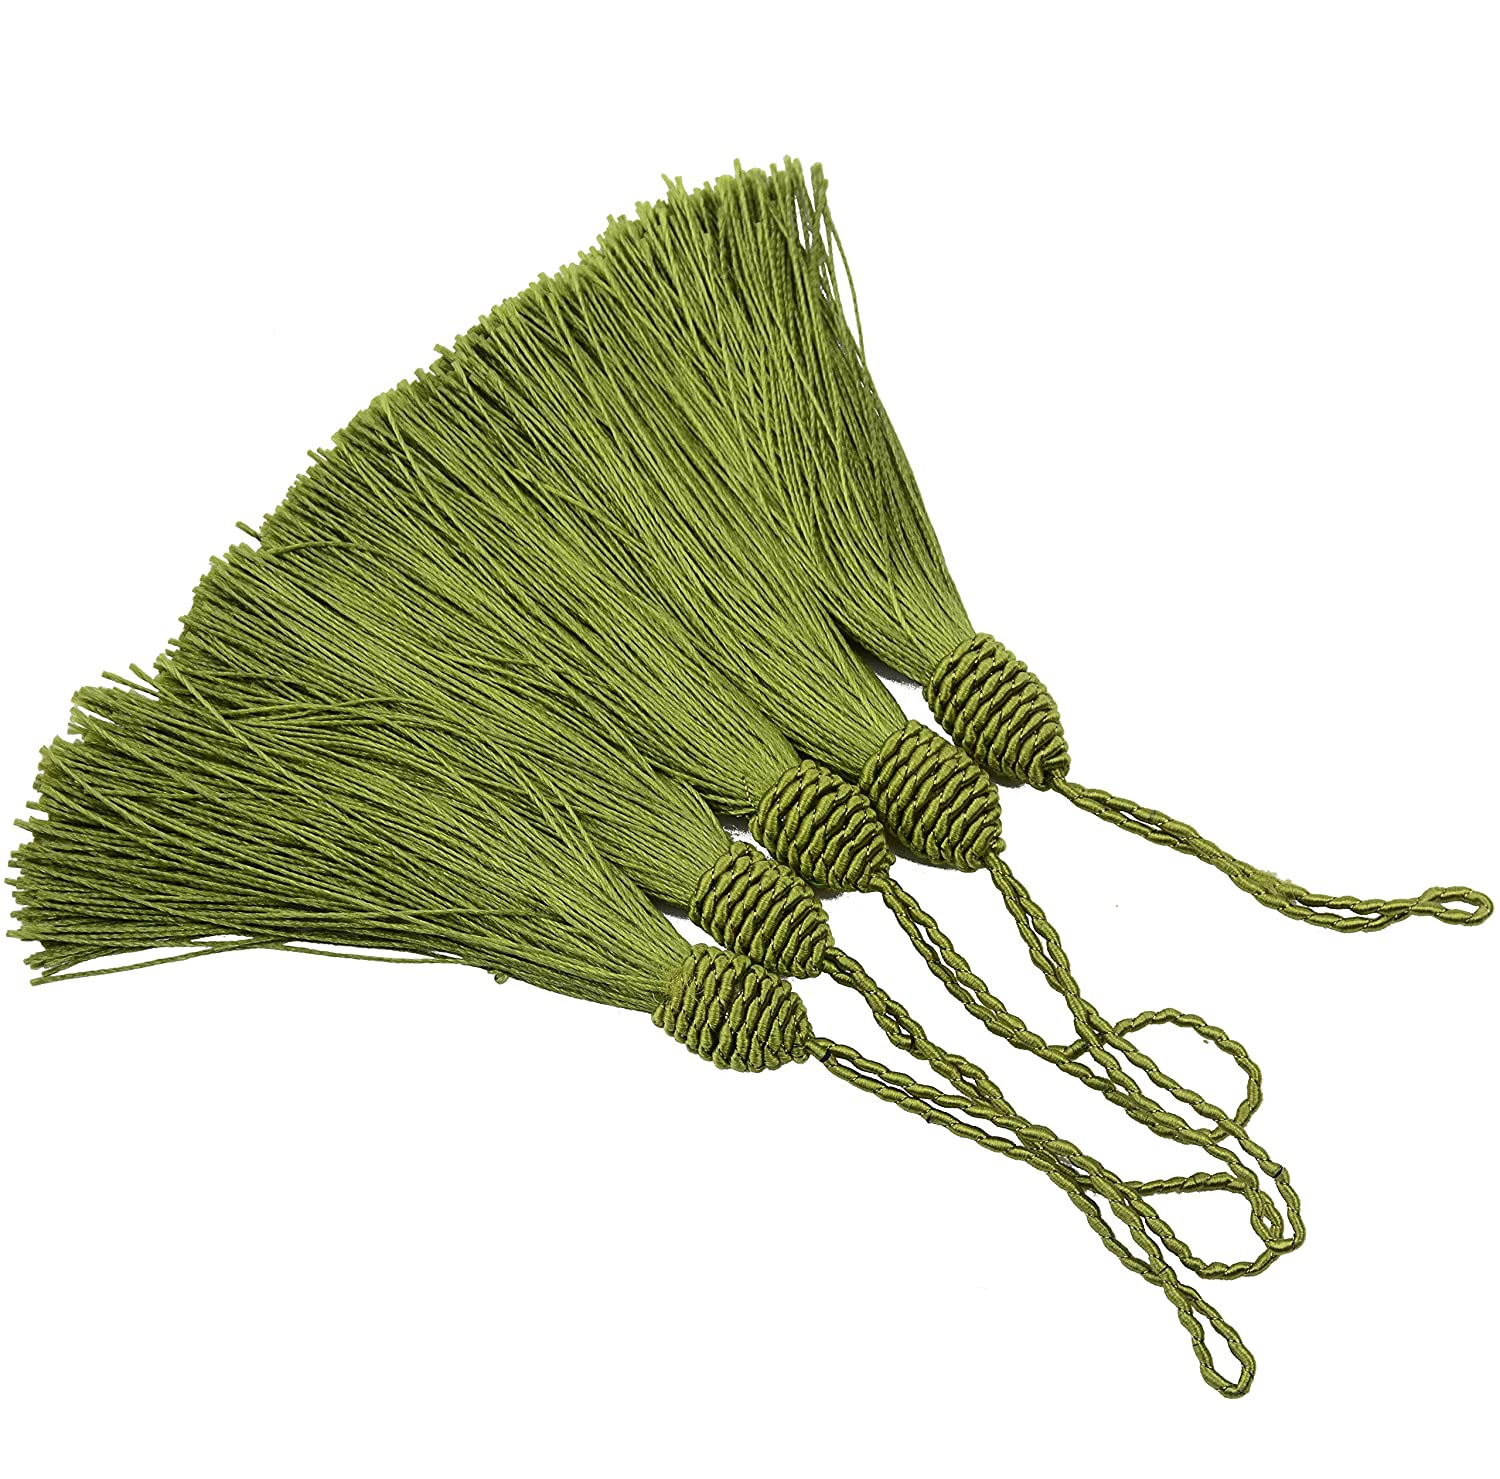 Bookmarks DIY Craft Accessory 20pcs 15.5cm//6 Inch Silky Floss Bookmark Tassels with 2-Inch Cord Loop and Small Chinese Knot for Jewelry Making Souvenir Mixed Yellow